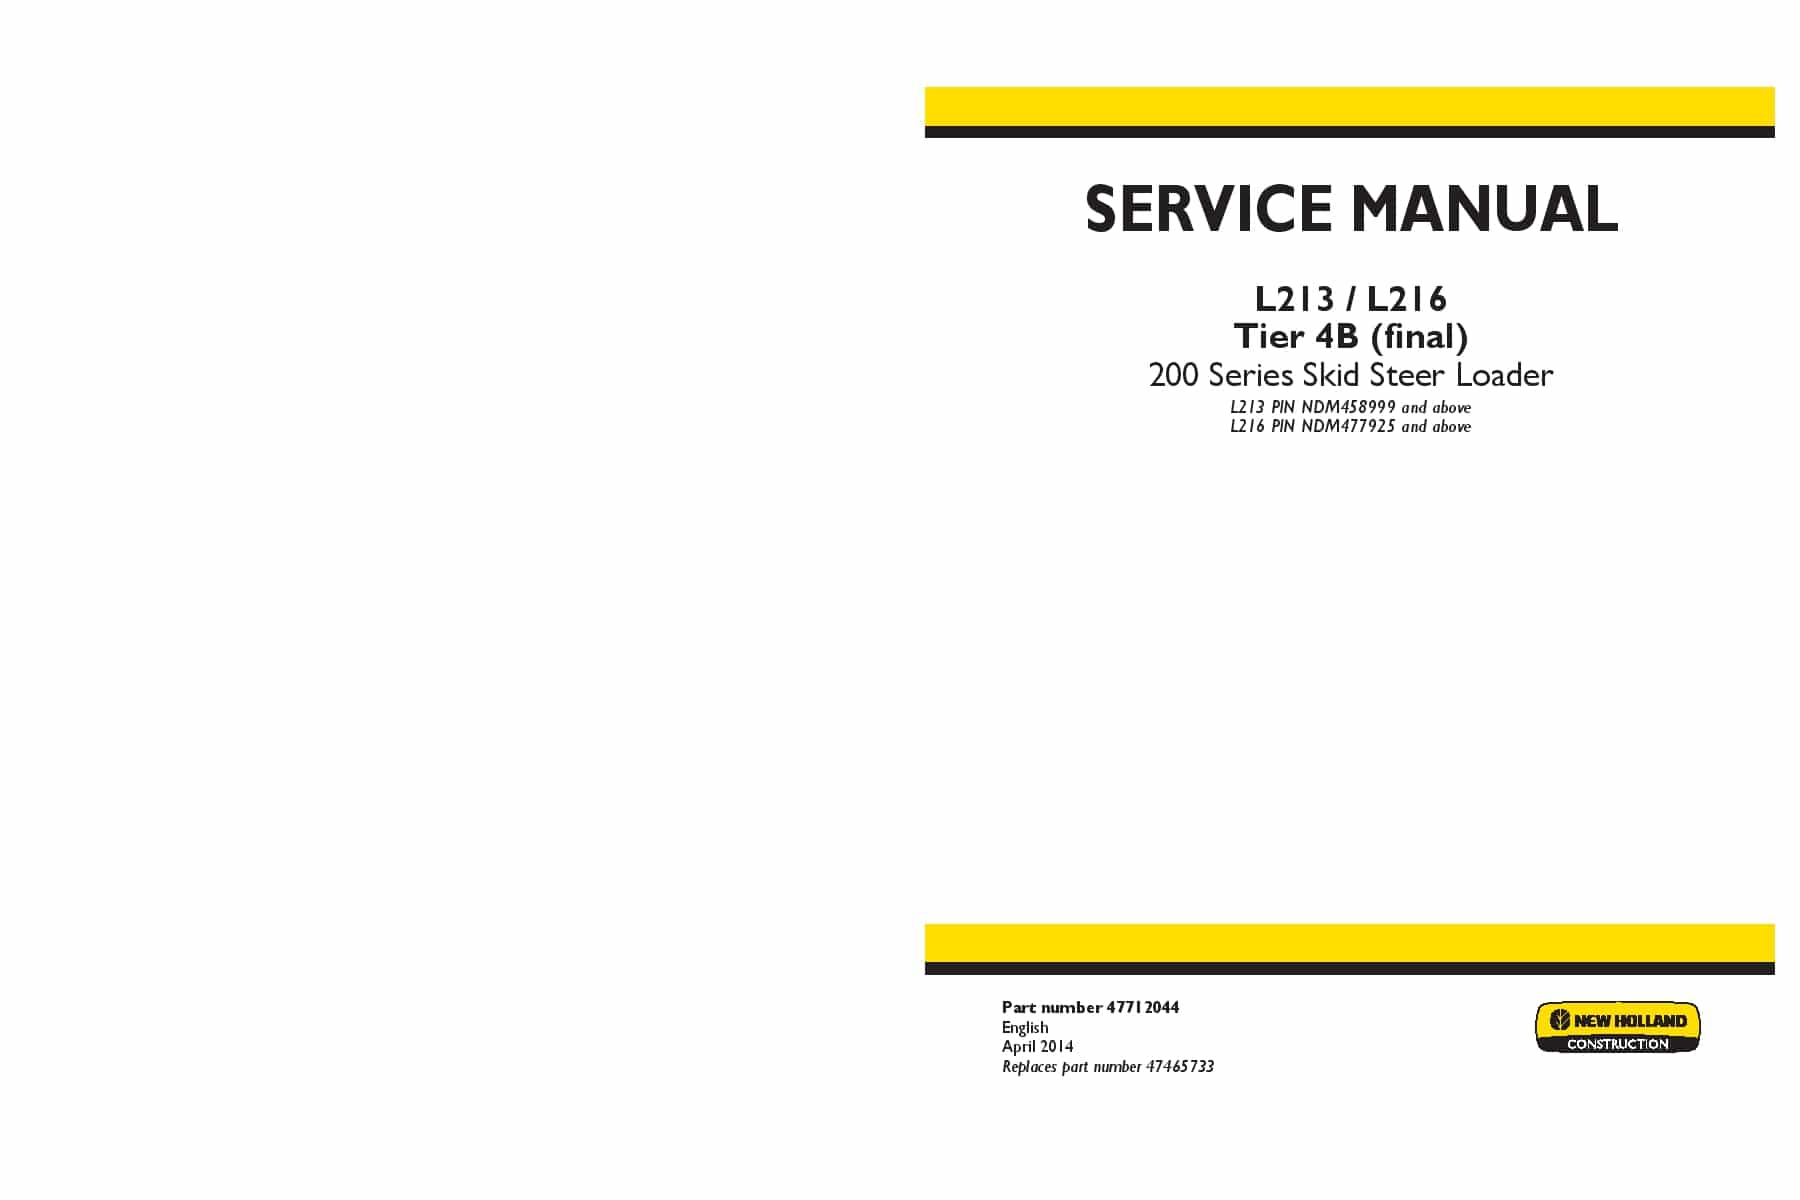 new holland skid steer repair manual